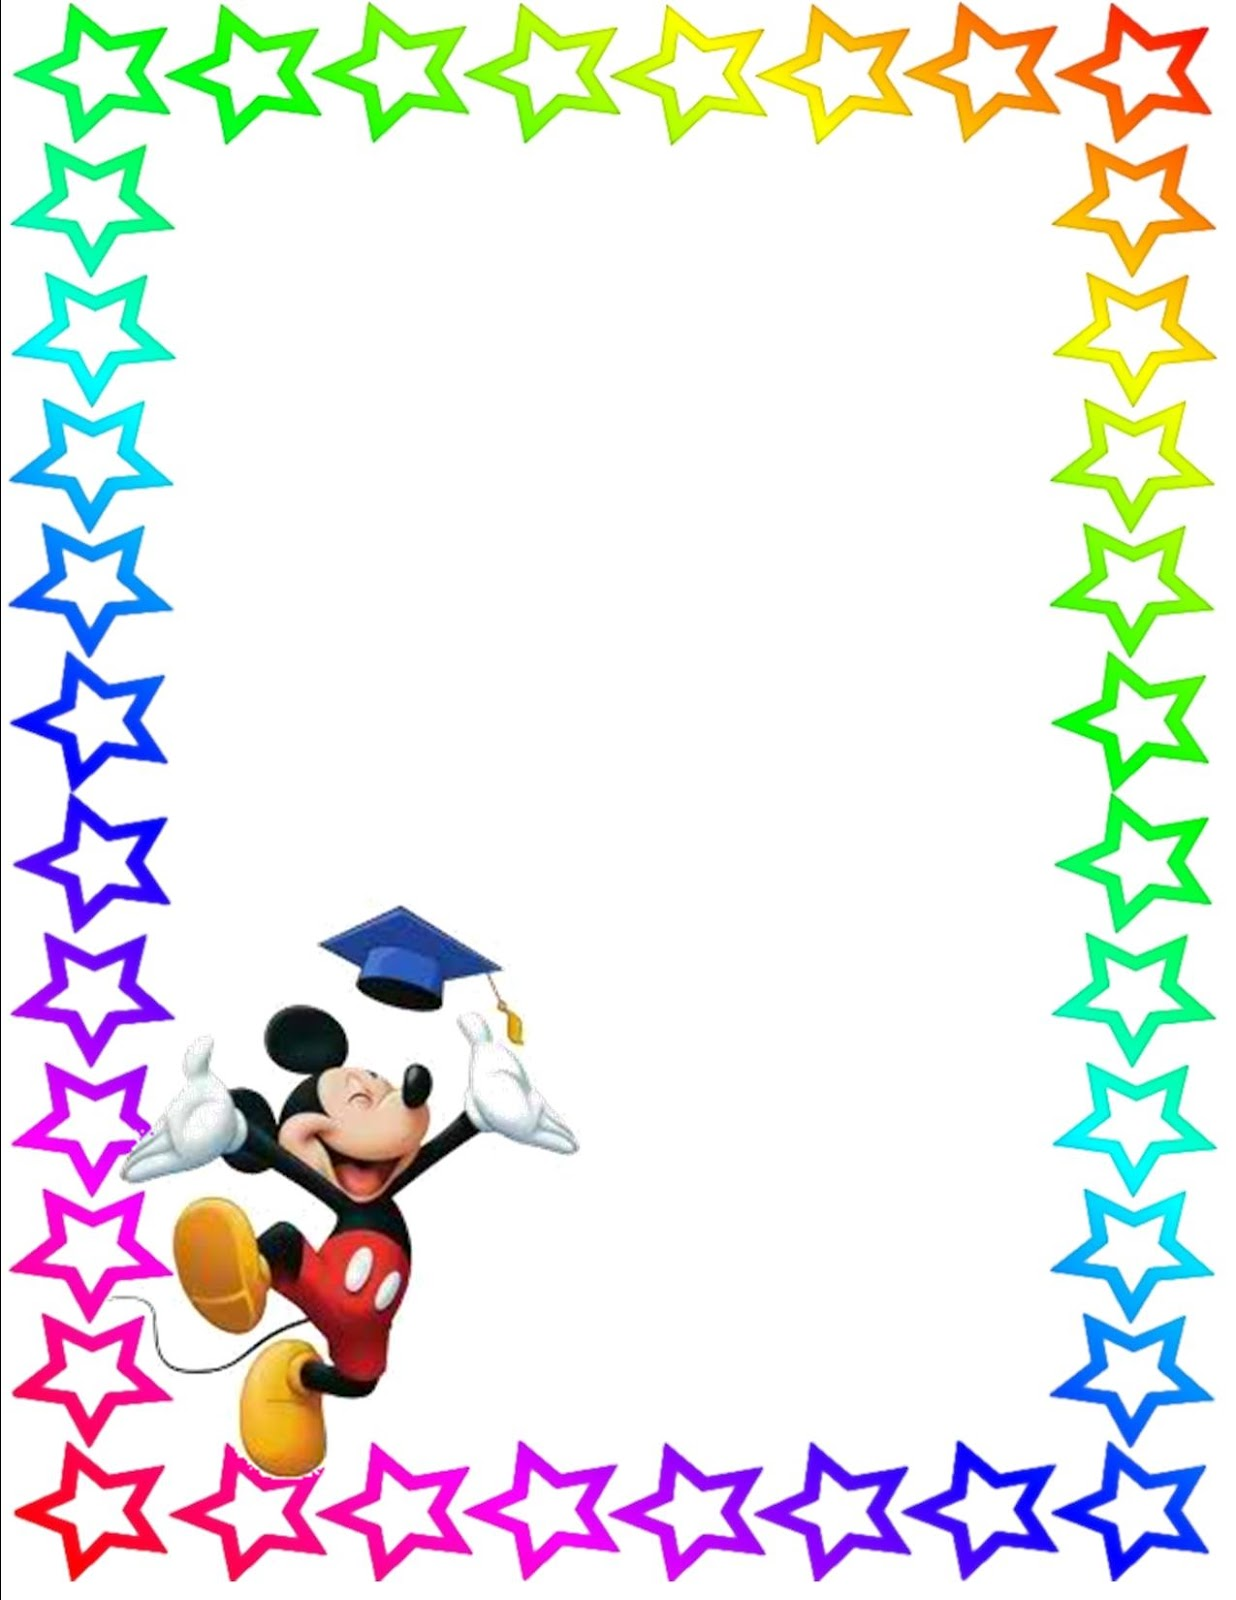 Mickey Mouse clipart page border Pic com/ Mouse Coordinating And